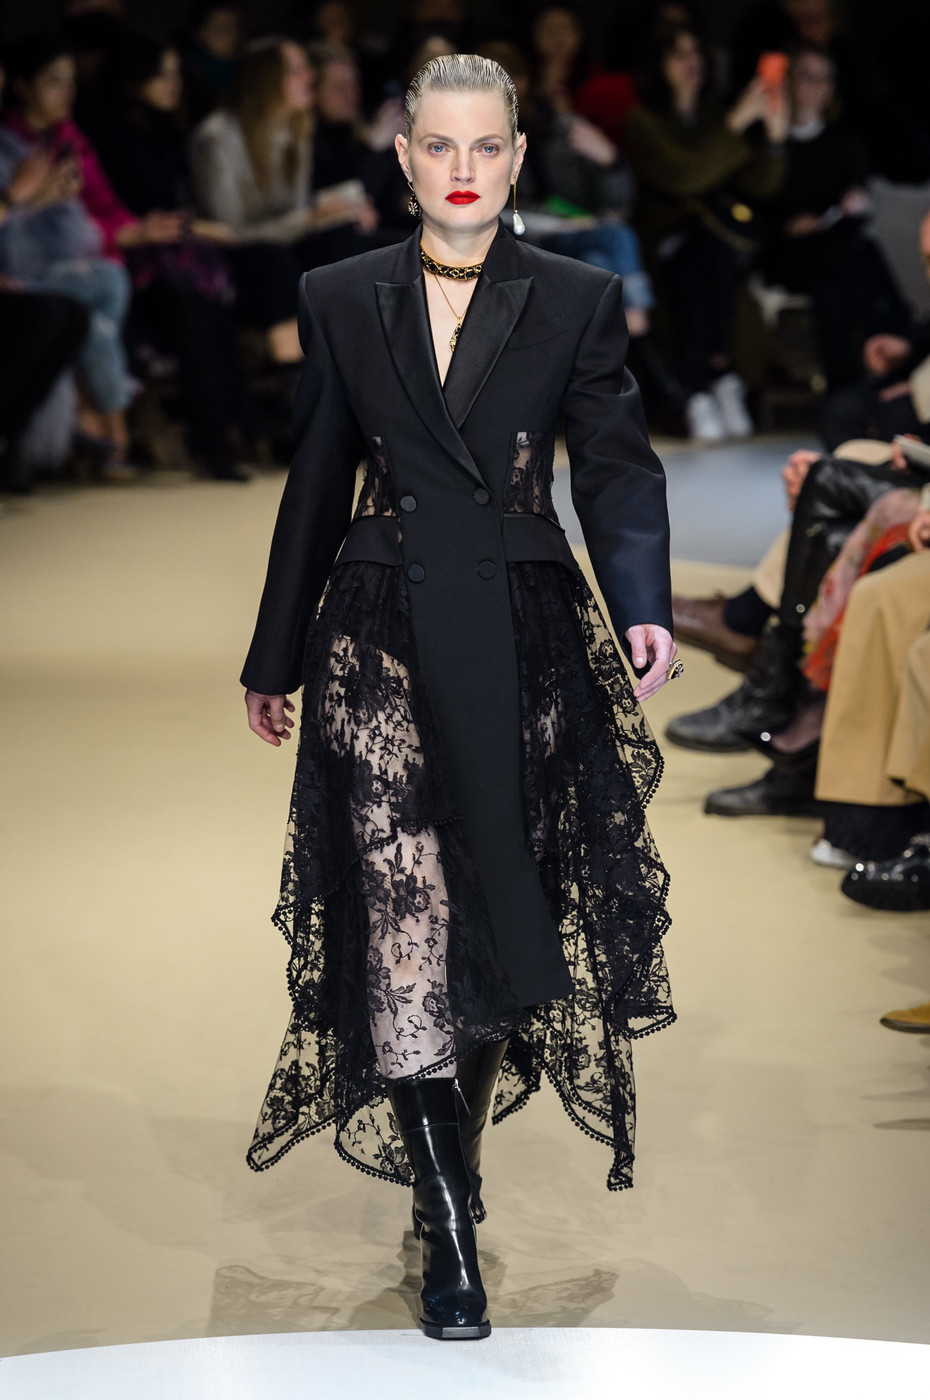 Alexander McQueen Fall 2018 Ready-to-Wear Collection - Vogue 41